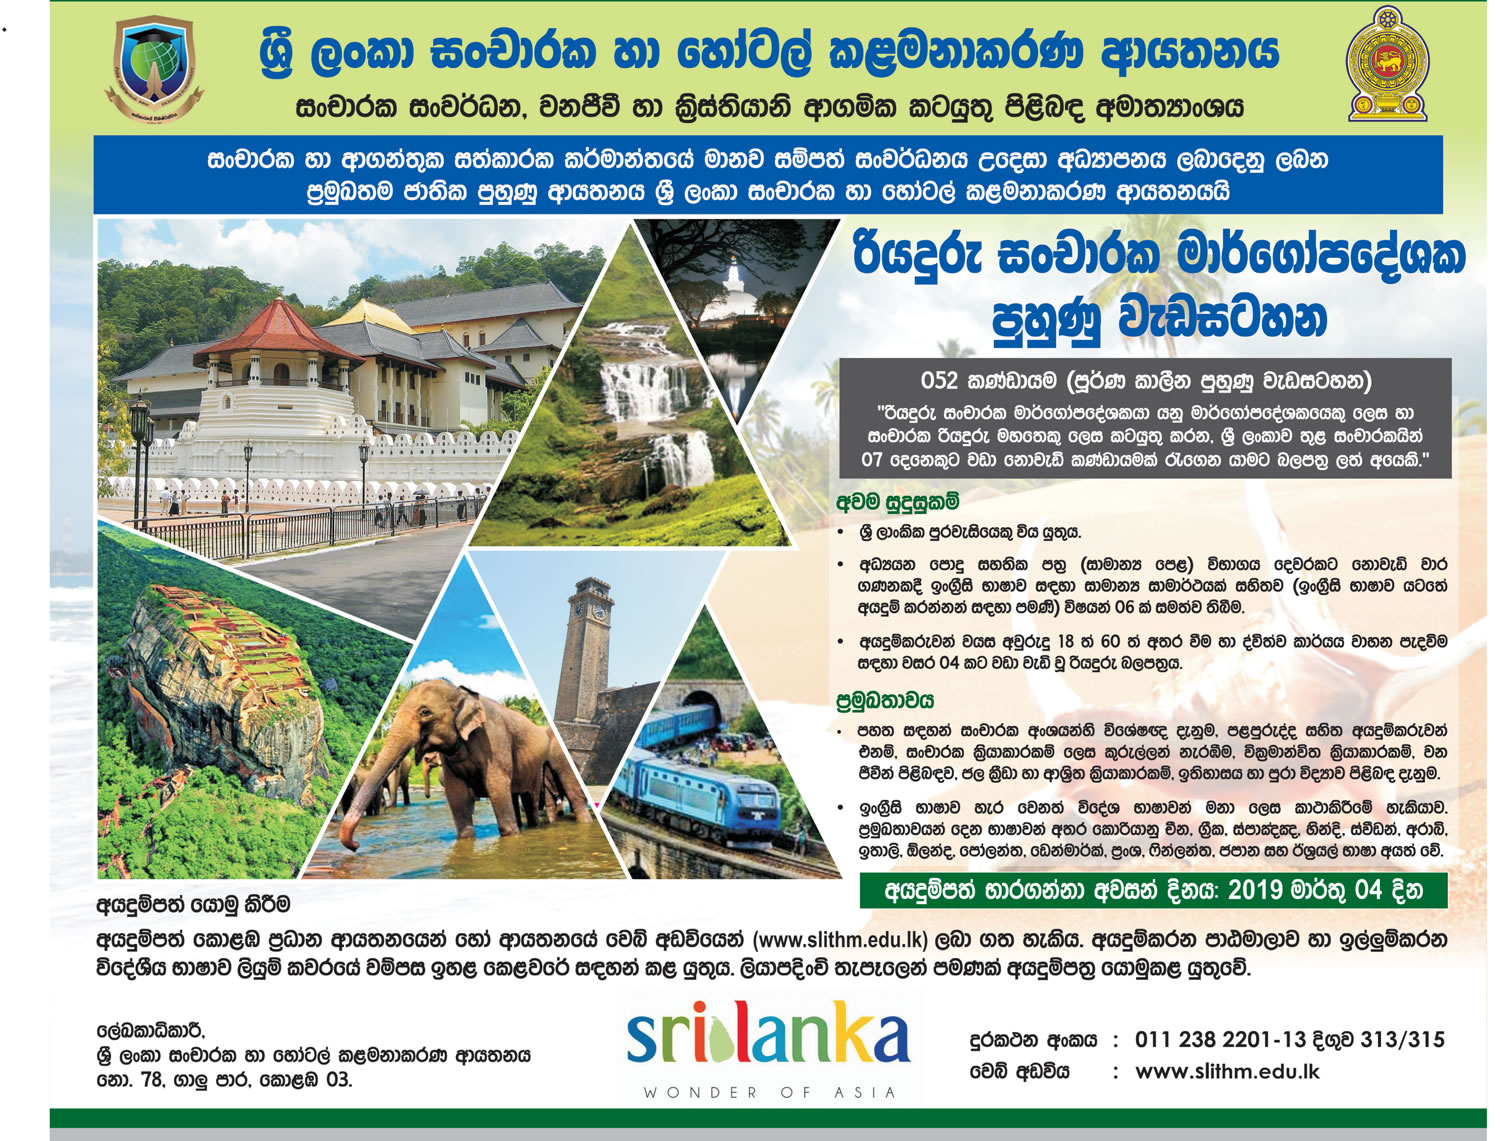 how to be a tourist guide in sri lanka